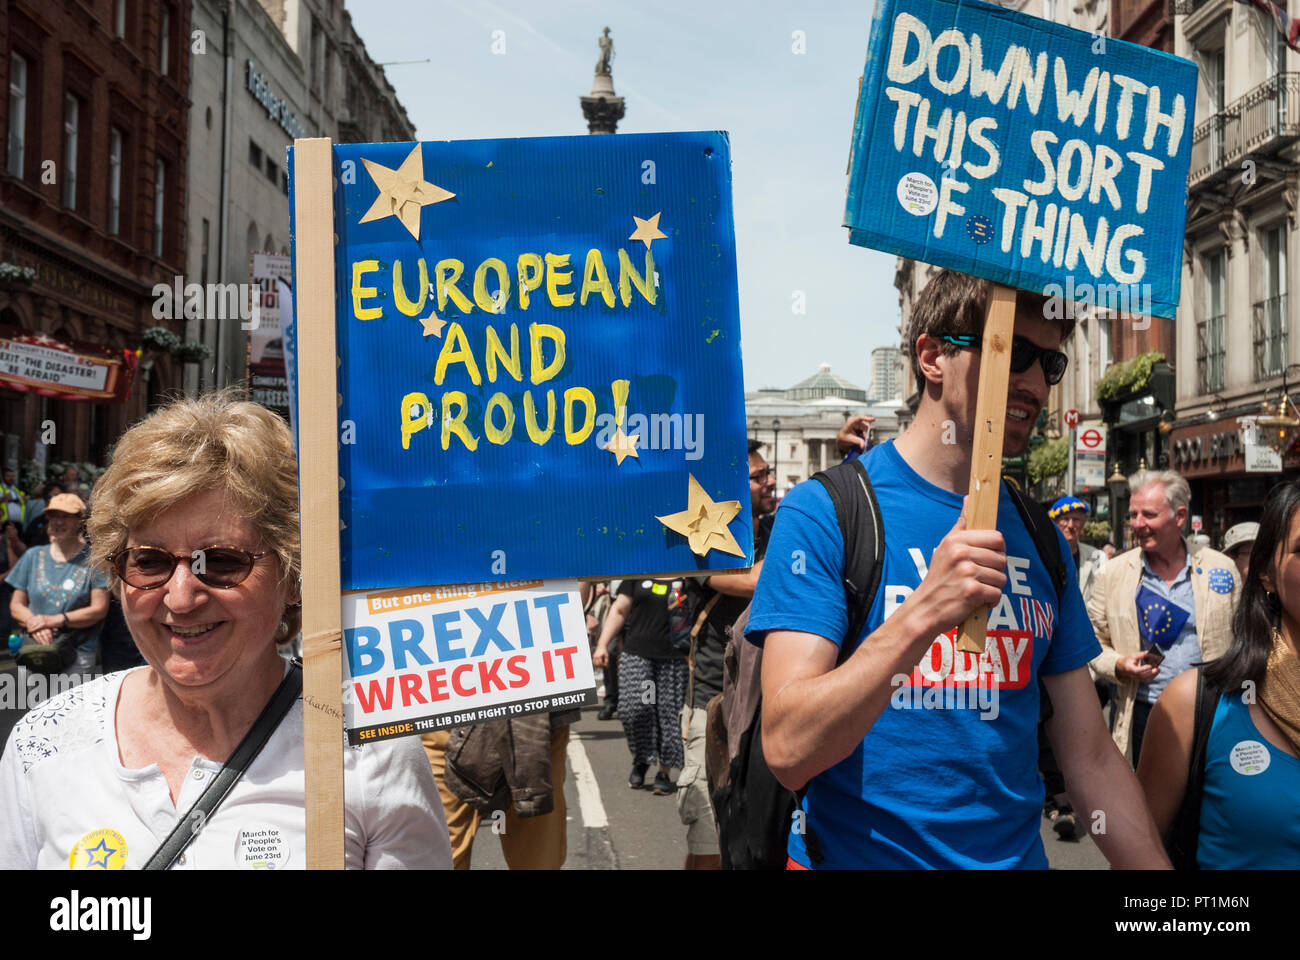 Anti Brexit rally with smiling woman and young man carrying placards 'European and proud!' and 'Down with this sort of thing'. - Stock Image